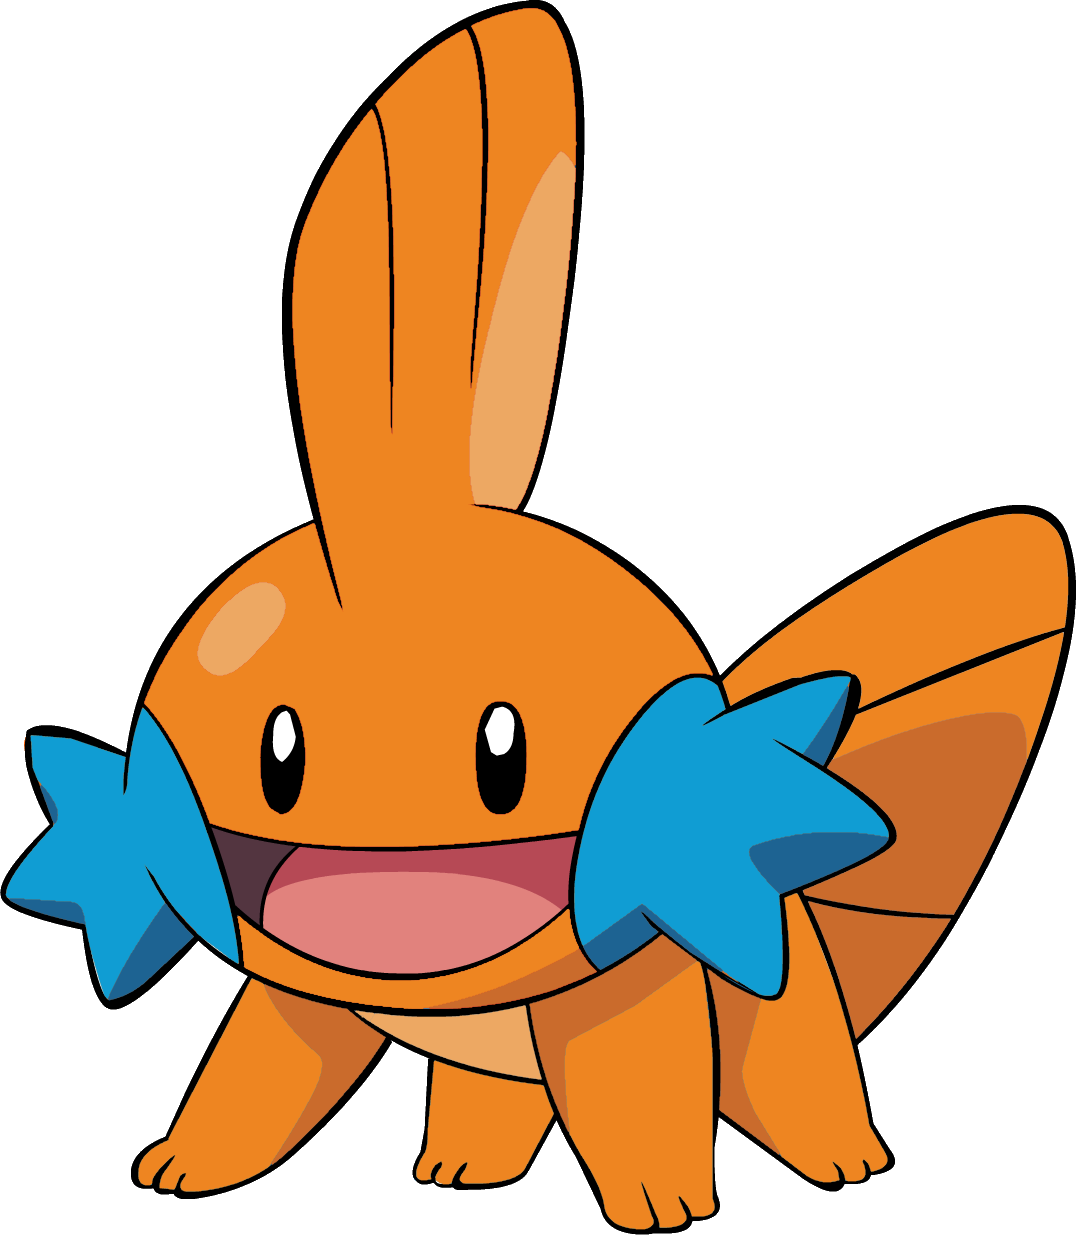 Mudkip transparent vulpix. I color swapped the